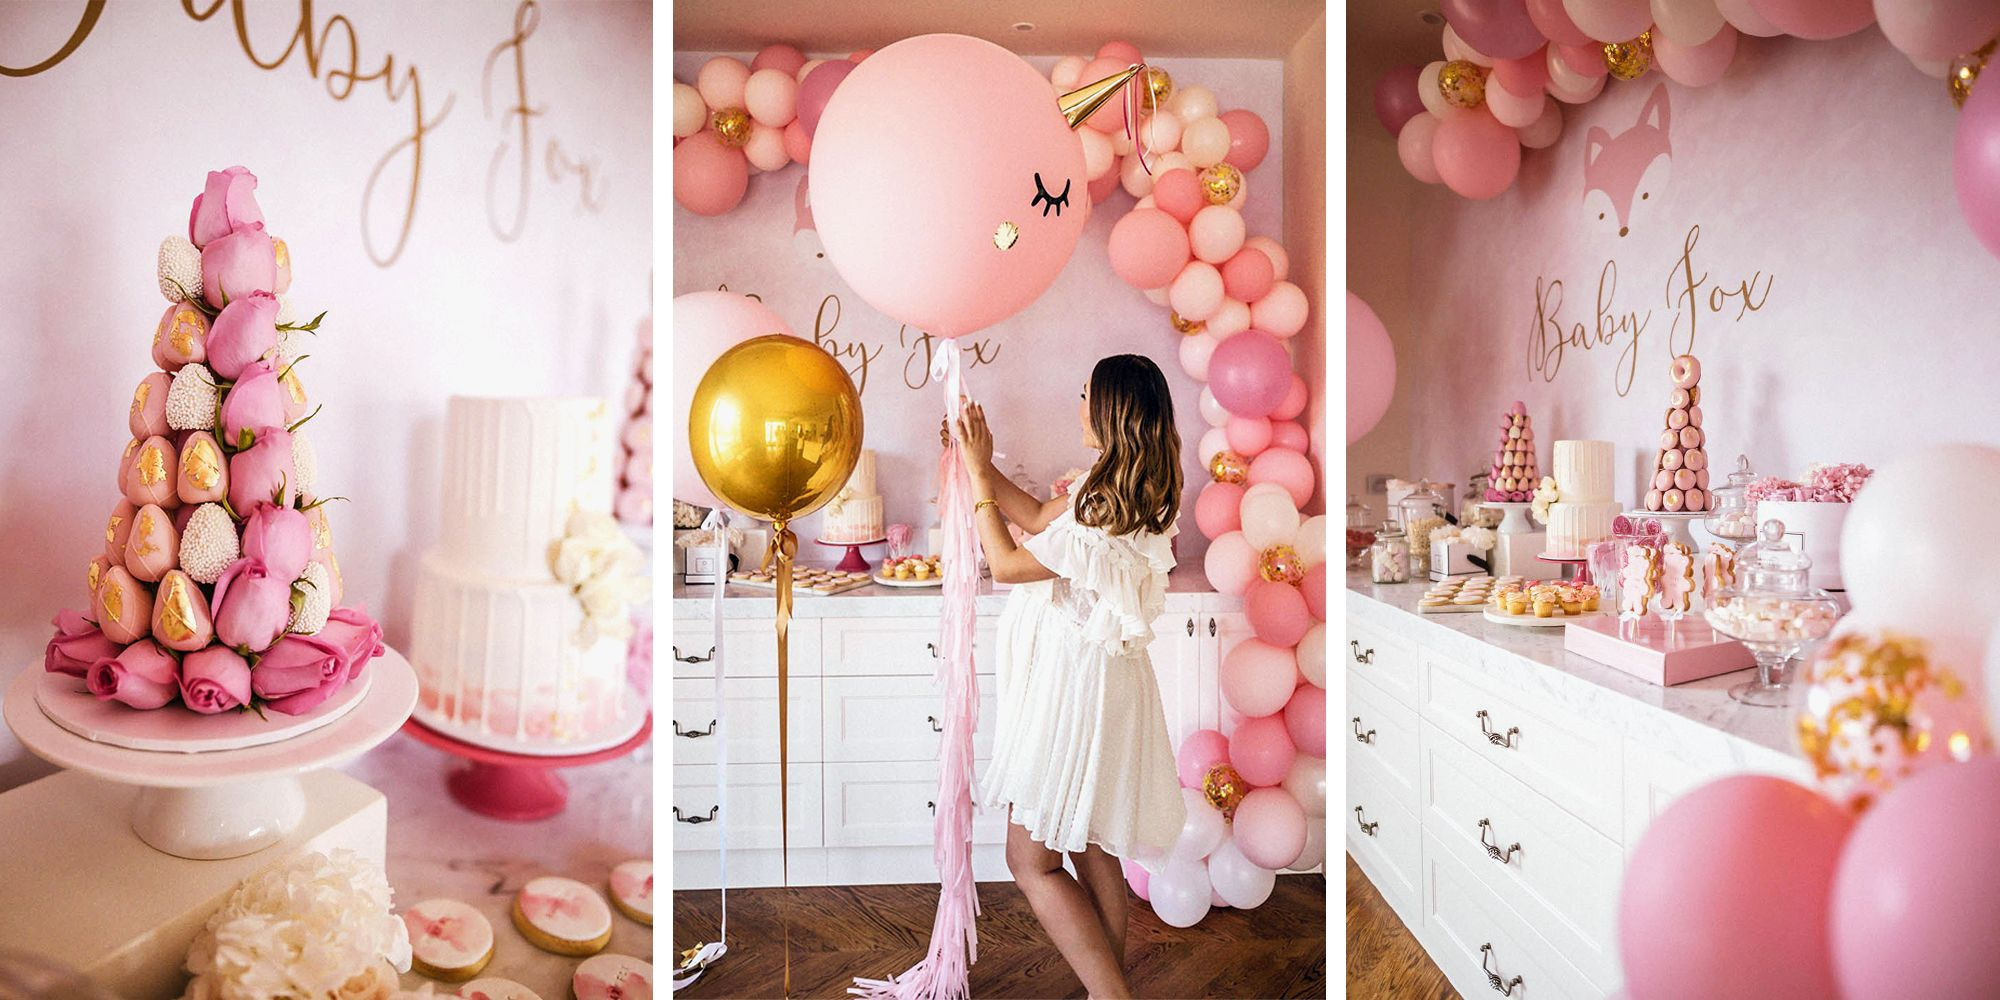 7 best baby shower